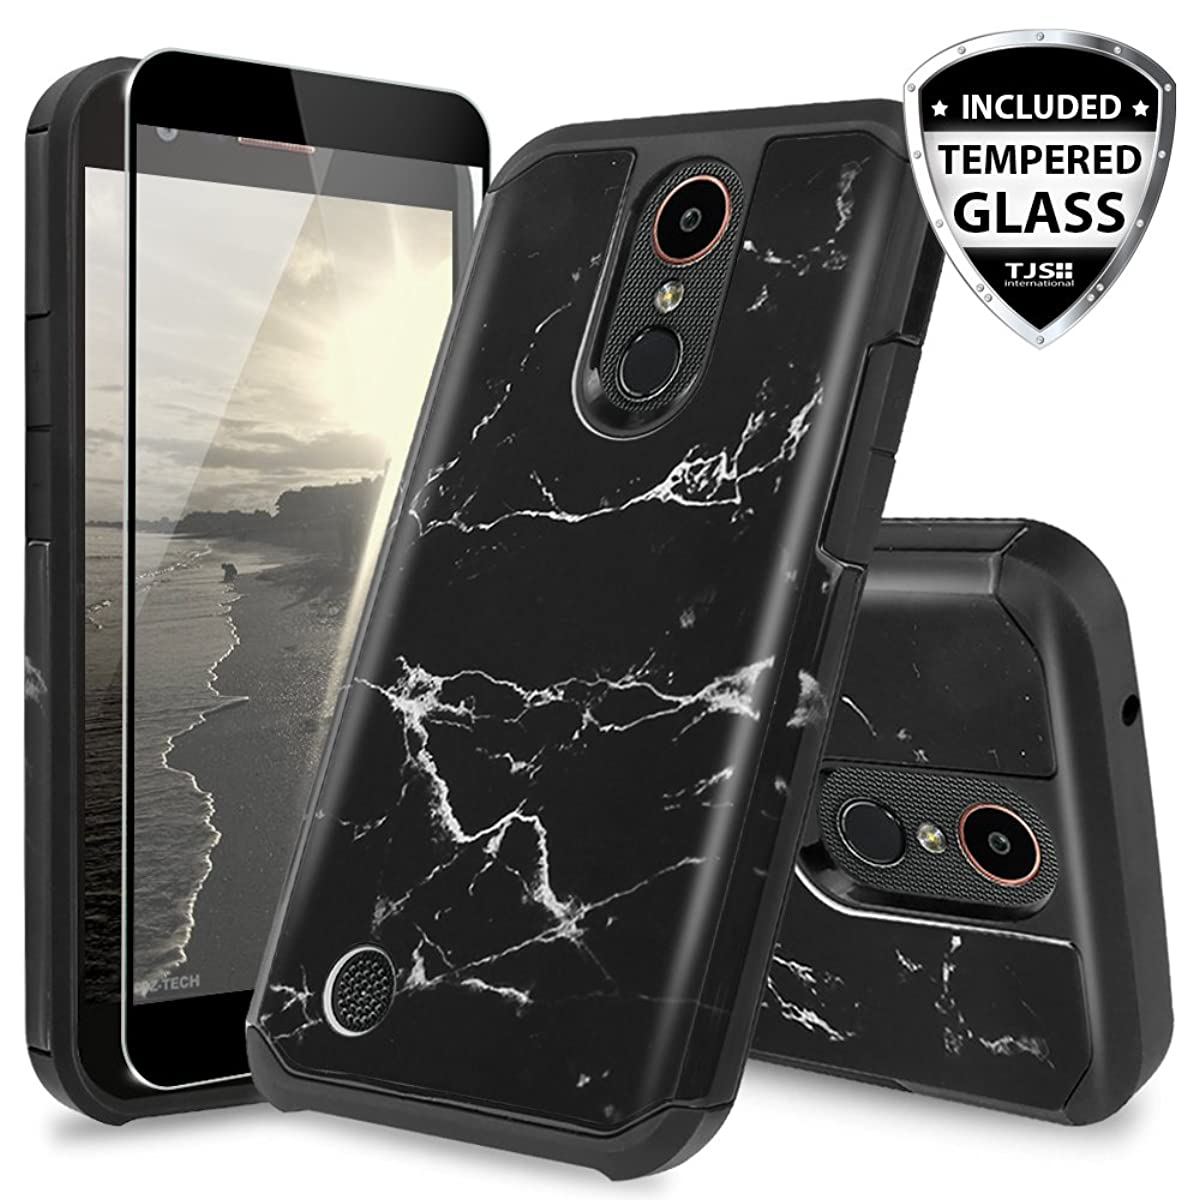 TJS Case for LG Aristo/Aristo 2/Aristo 2 Plus/Aristo 3/Aristo 3 Plus/Tribute Dynasty/Tribute Empire/Rebel 3 LTE/Phoenix 4 [Full Coverage Tempered Glass Screen Protector] Marble Phone Cover (Black)